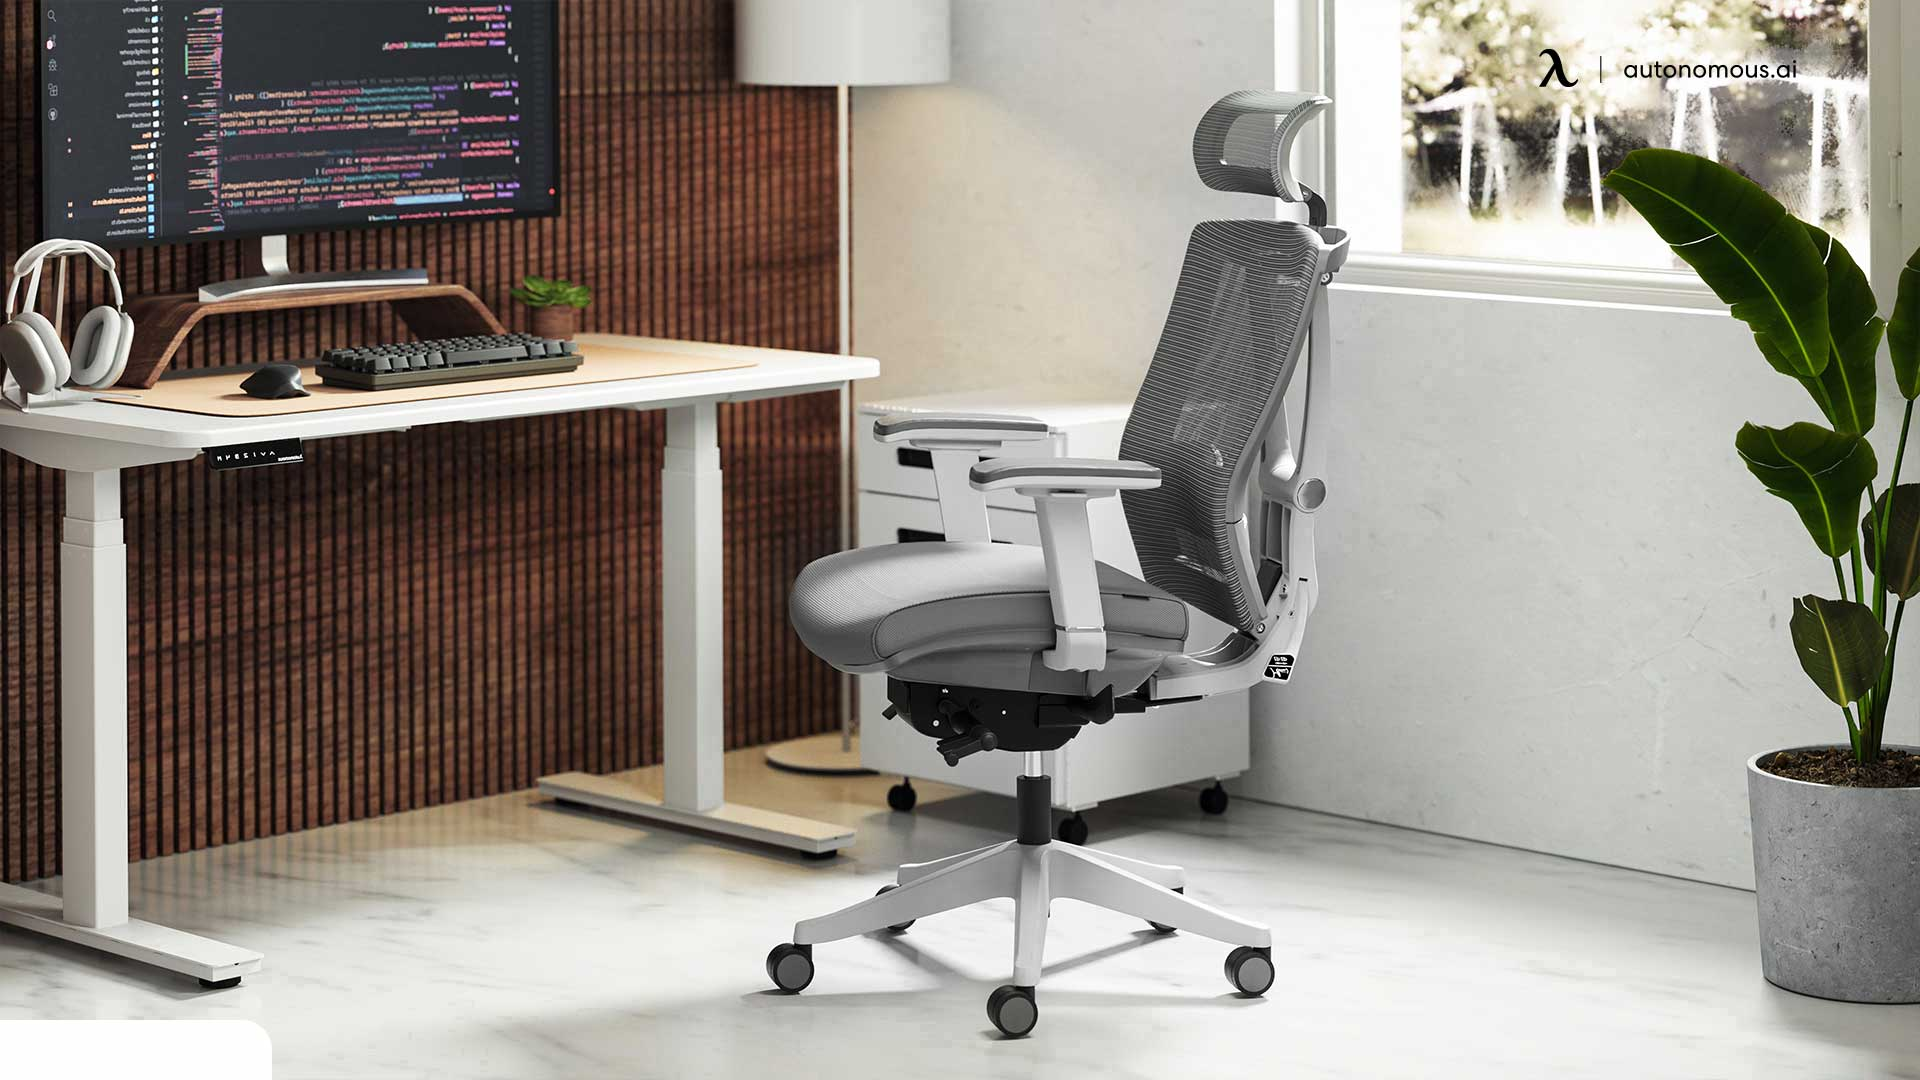 Add a Smart Standing Desk and Chair